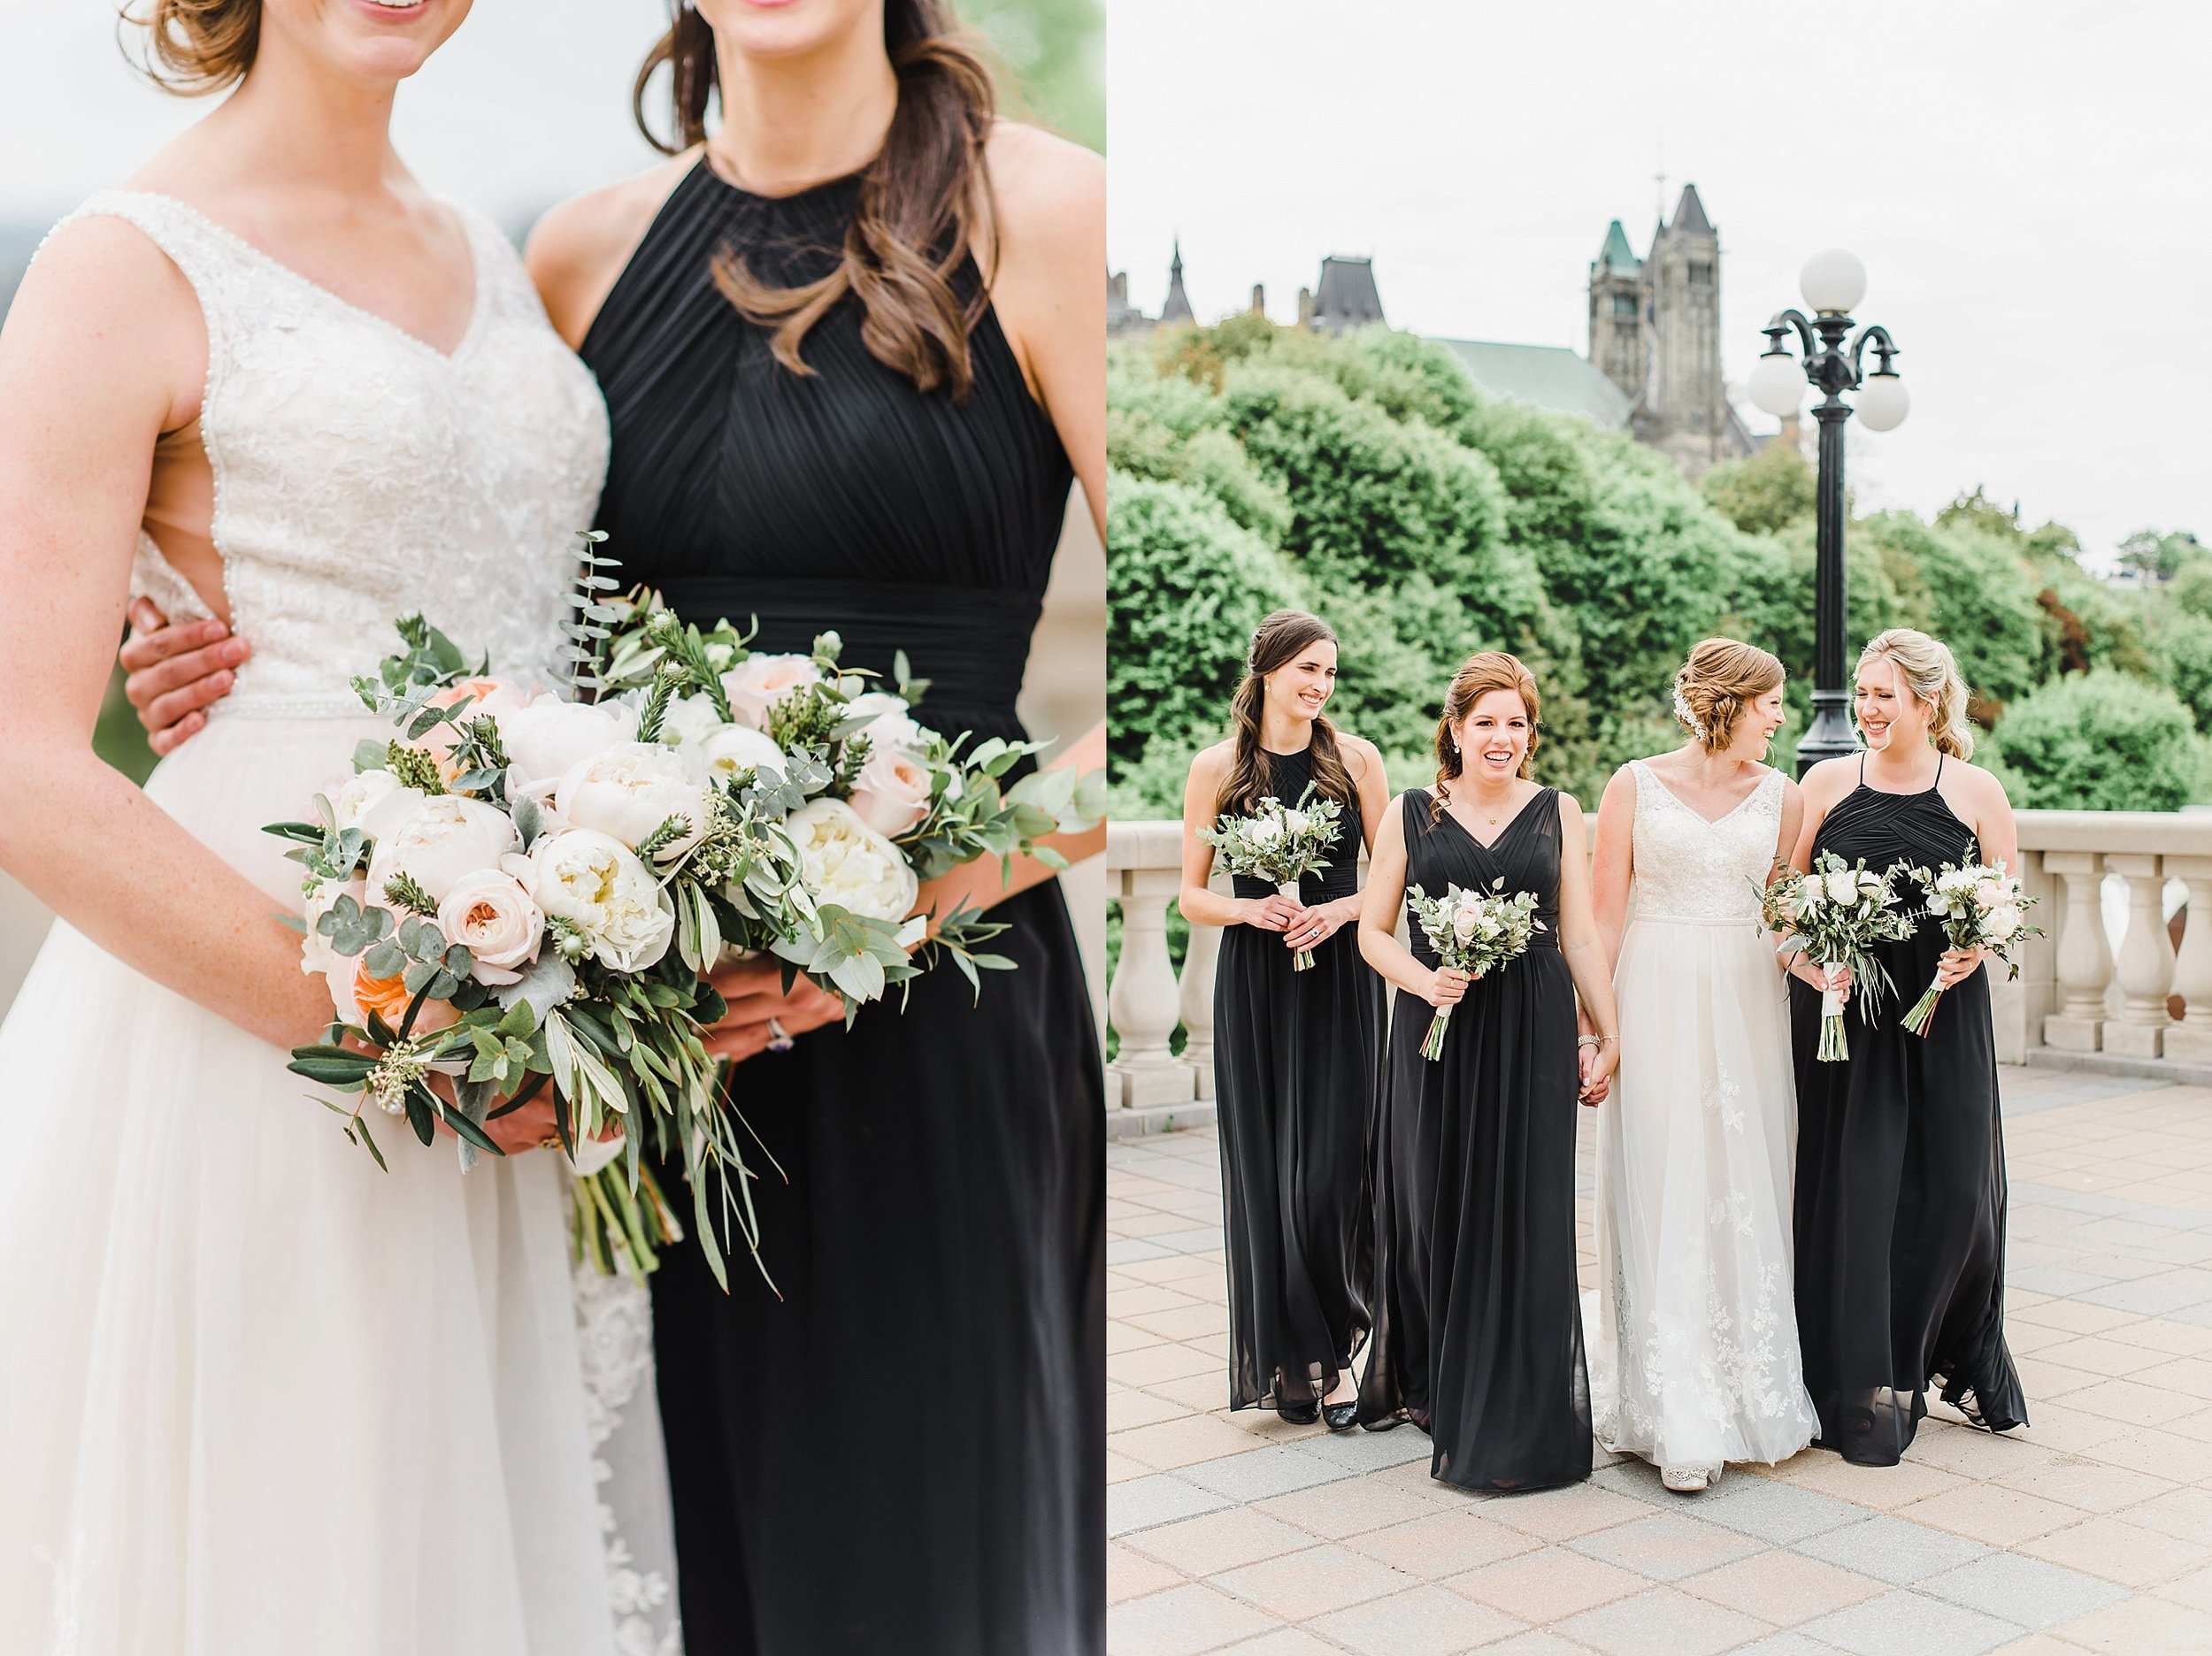 light airy indie fine art ottawa wedding photographer | Ali and Batoul Photography_0359.jpg